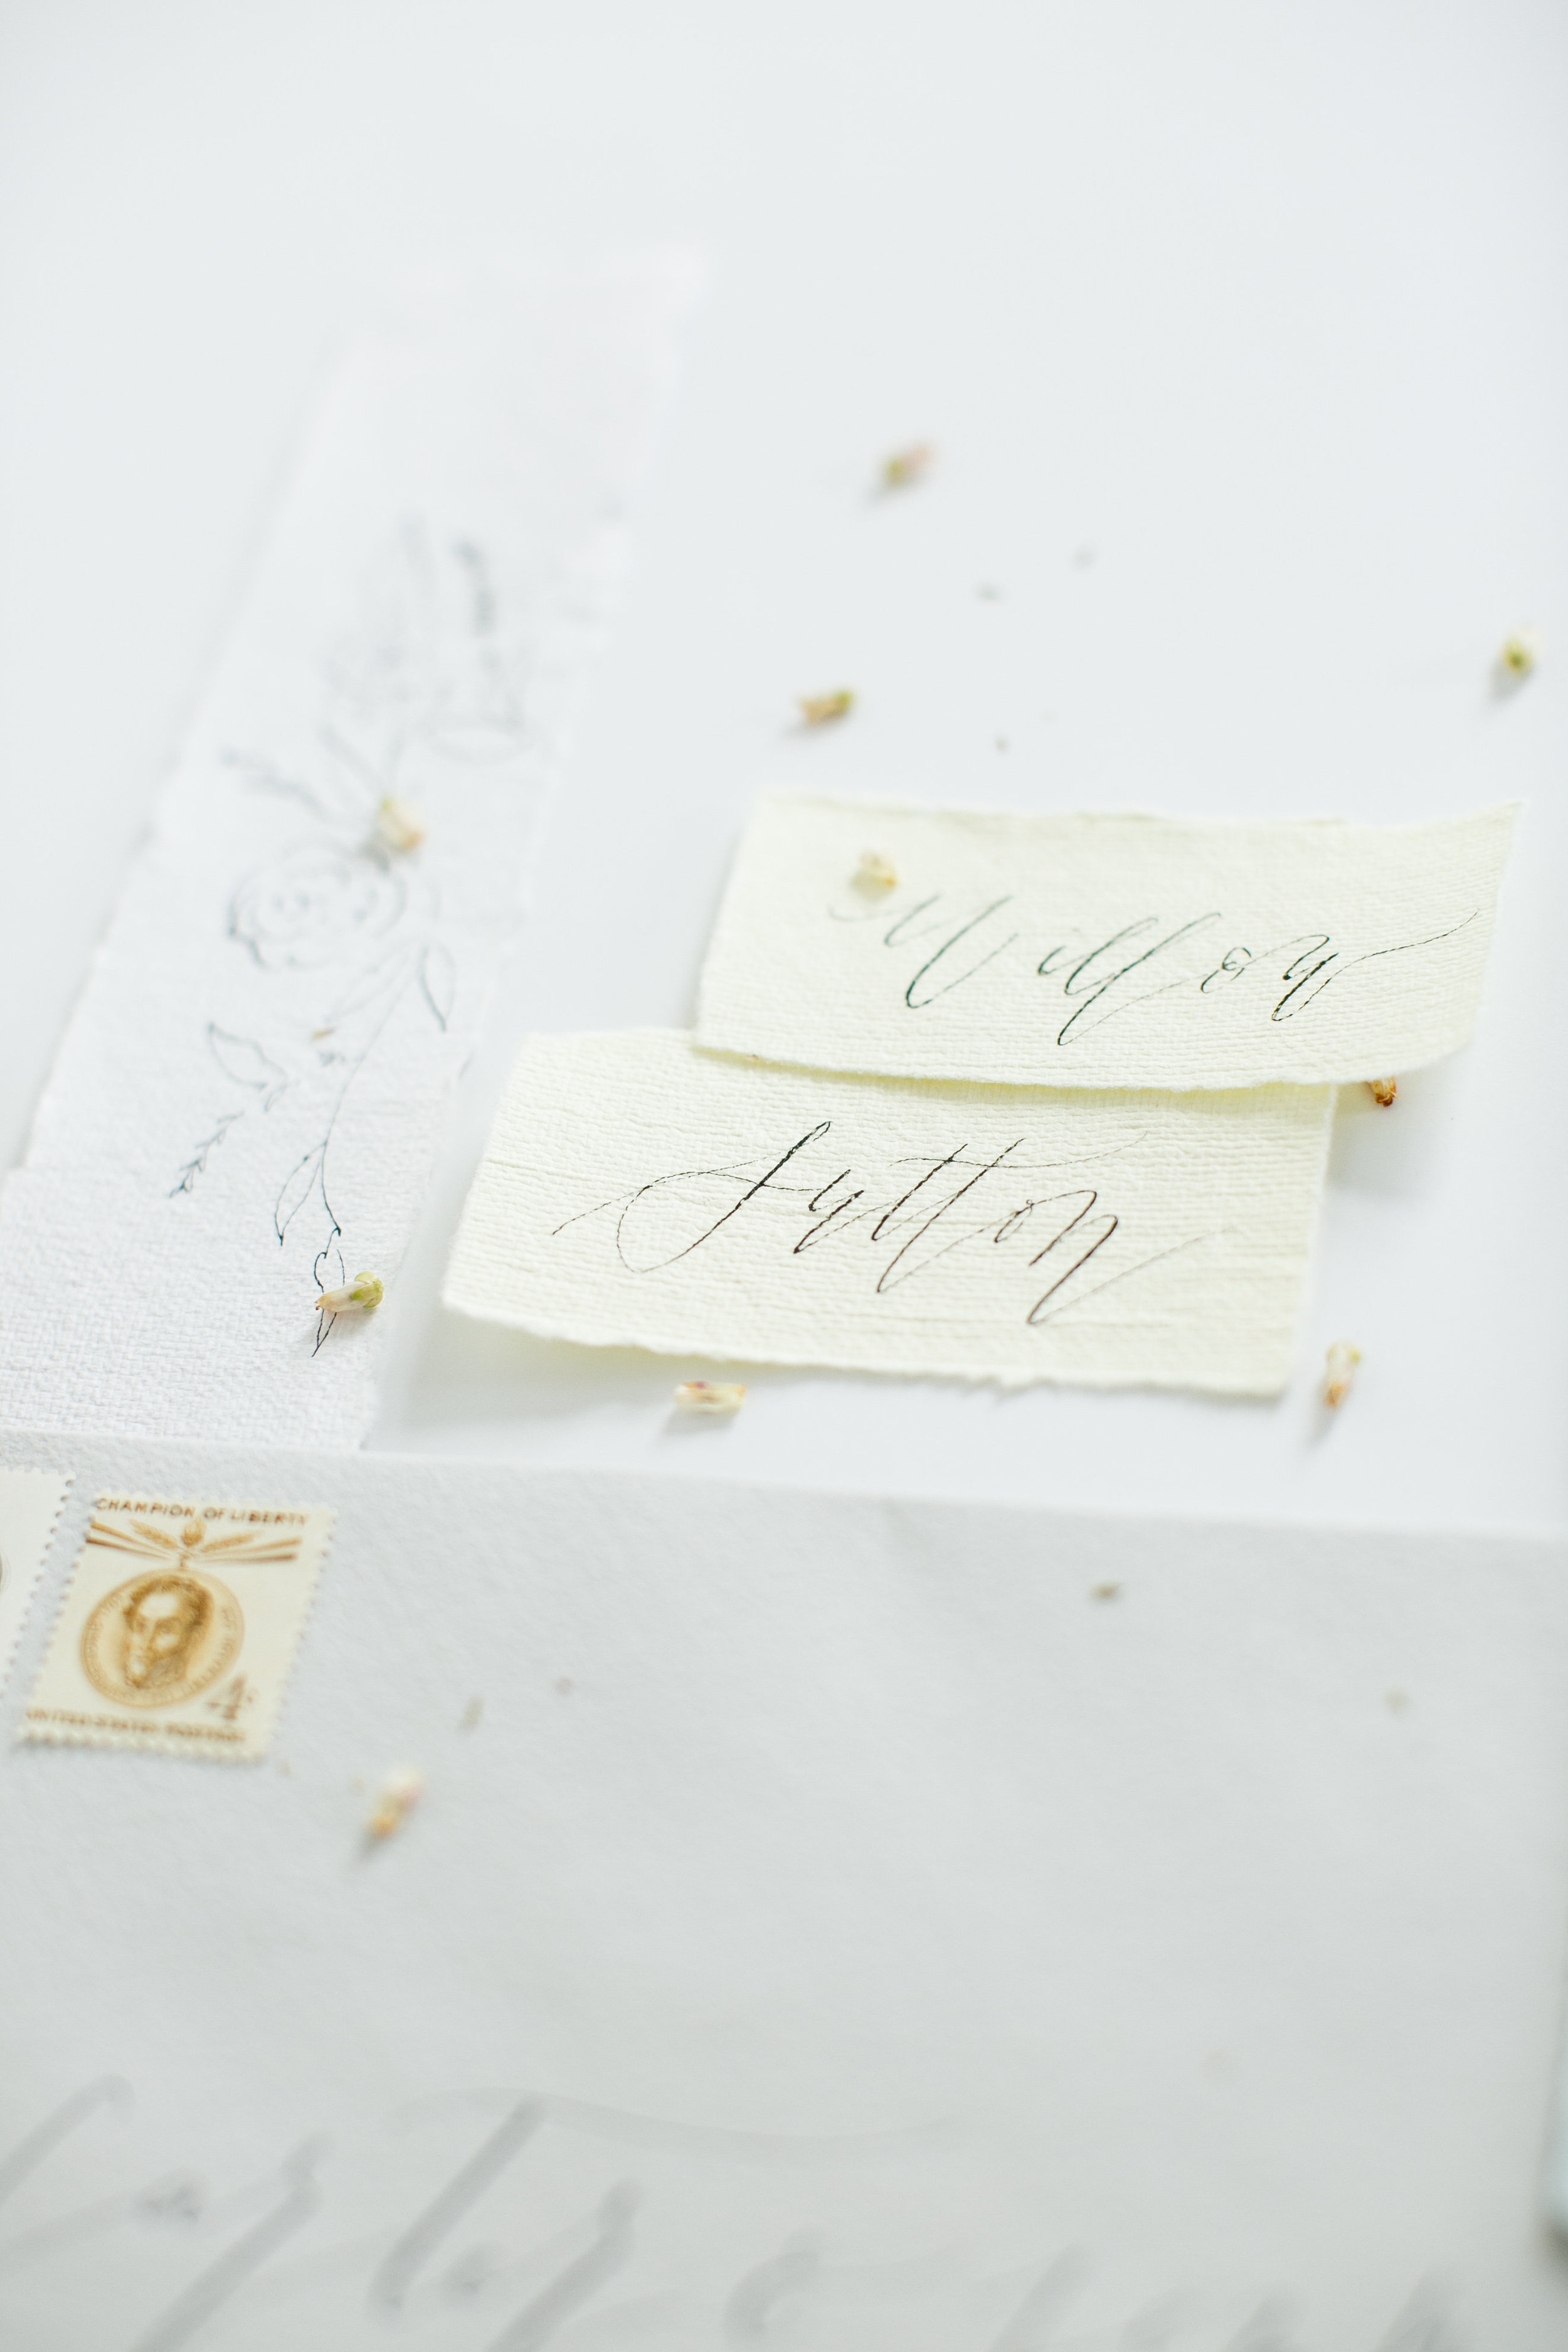 Farm to Table | Farm Wedding | Farm Elopement | Country Wedding | Ivory+Bliss | Photography Workshop | Fine Art Wedding Blog | Joy Wed | Wedding Stationery | Wedding Calligraphy